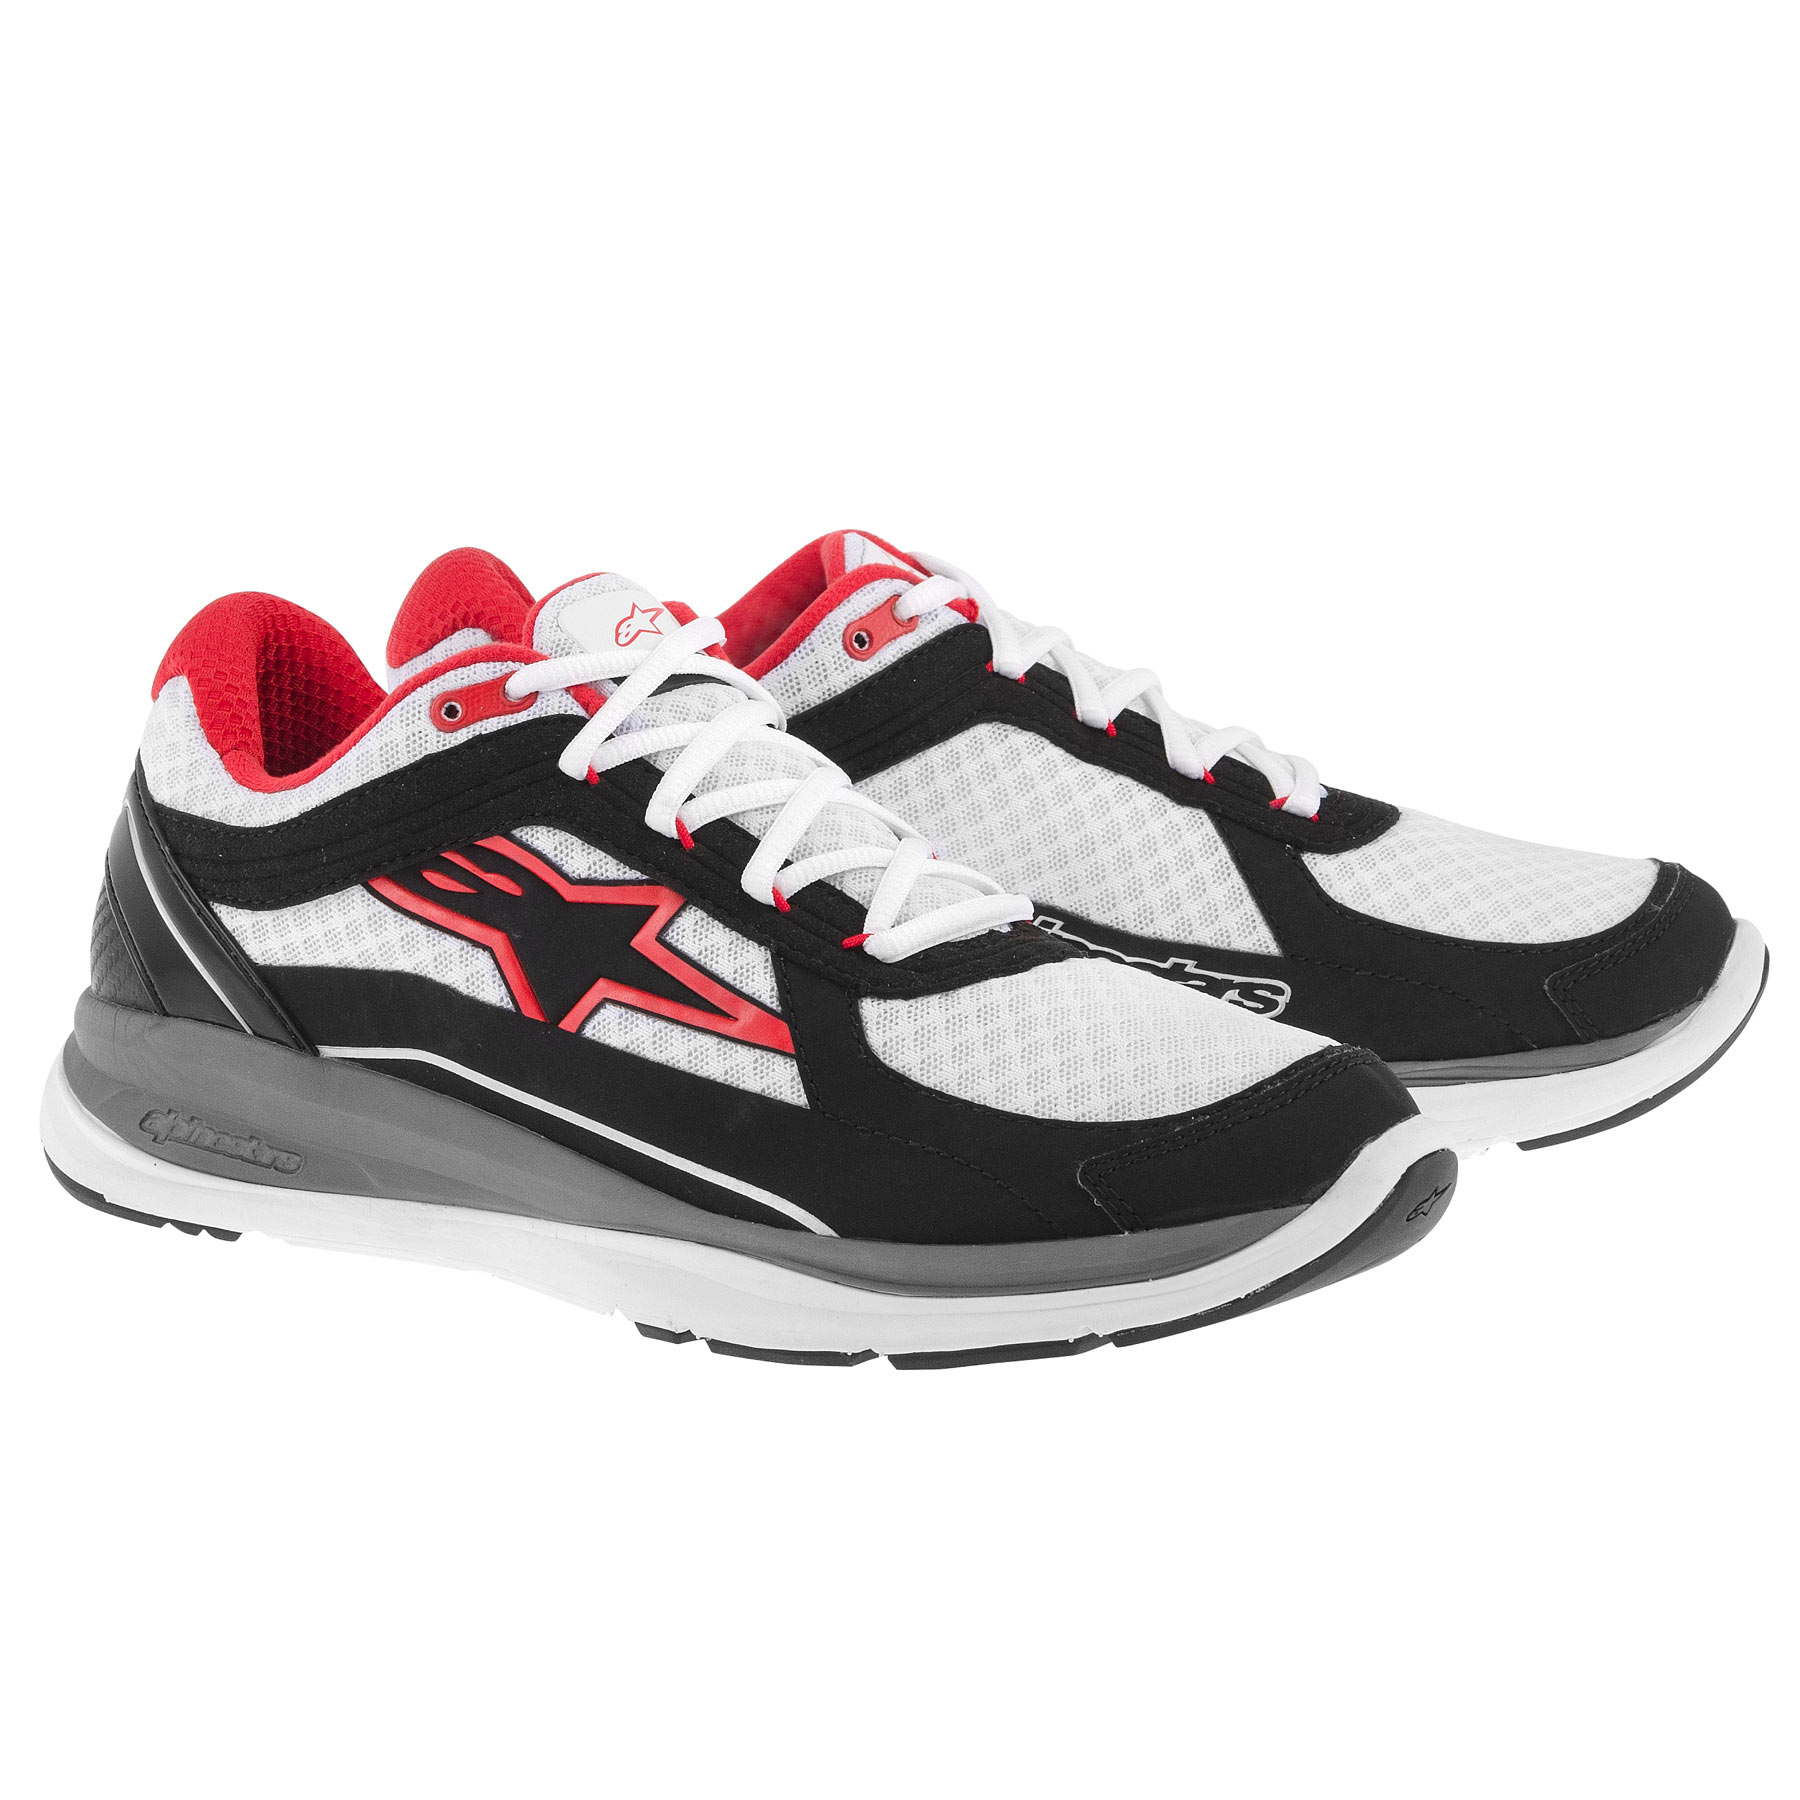 Closeout Saucony Running Shoes